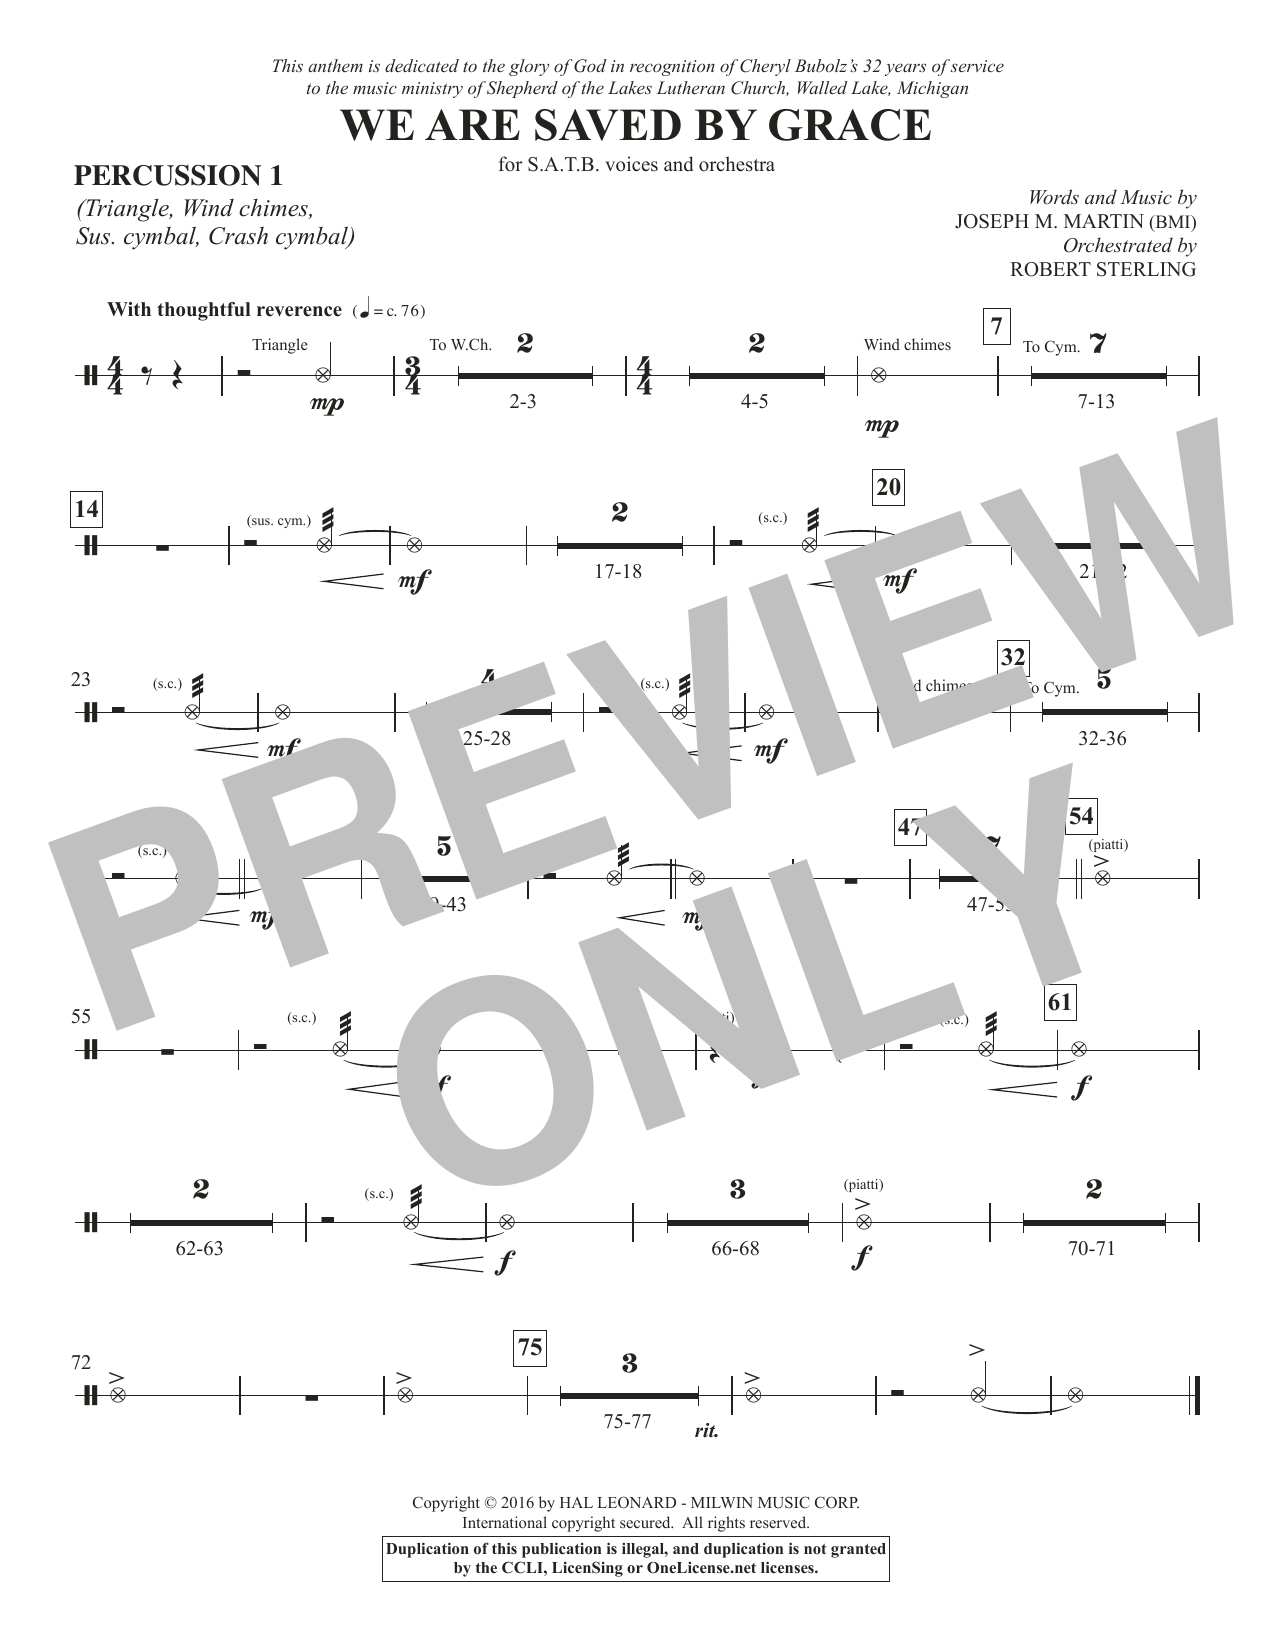 We Are Saved by Grace - Percussion 1 Sheet Music